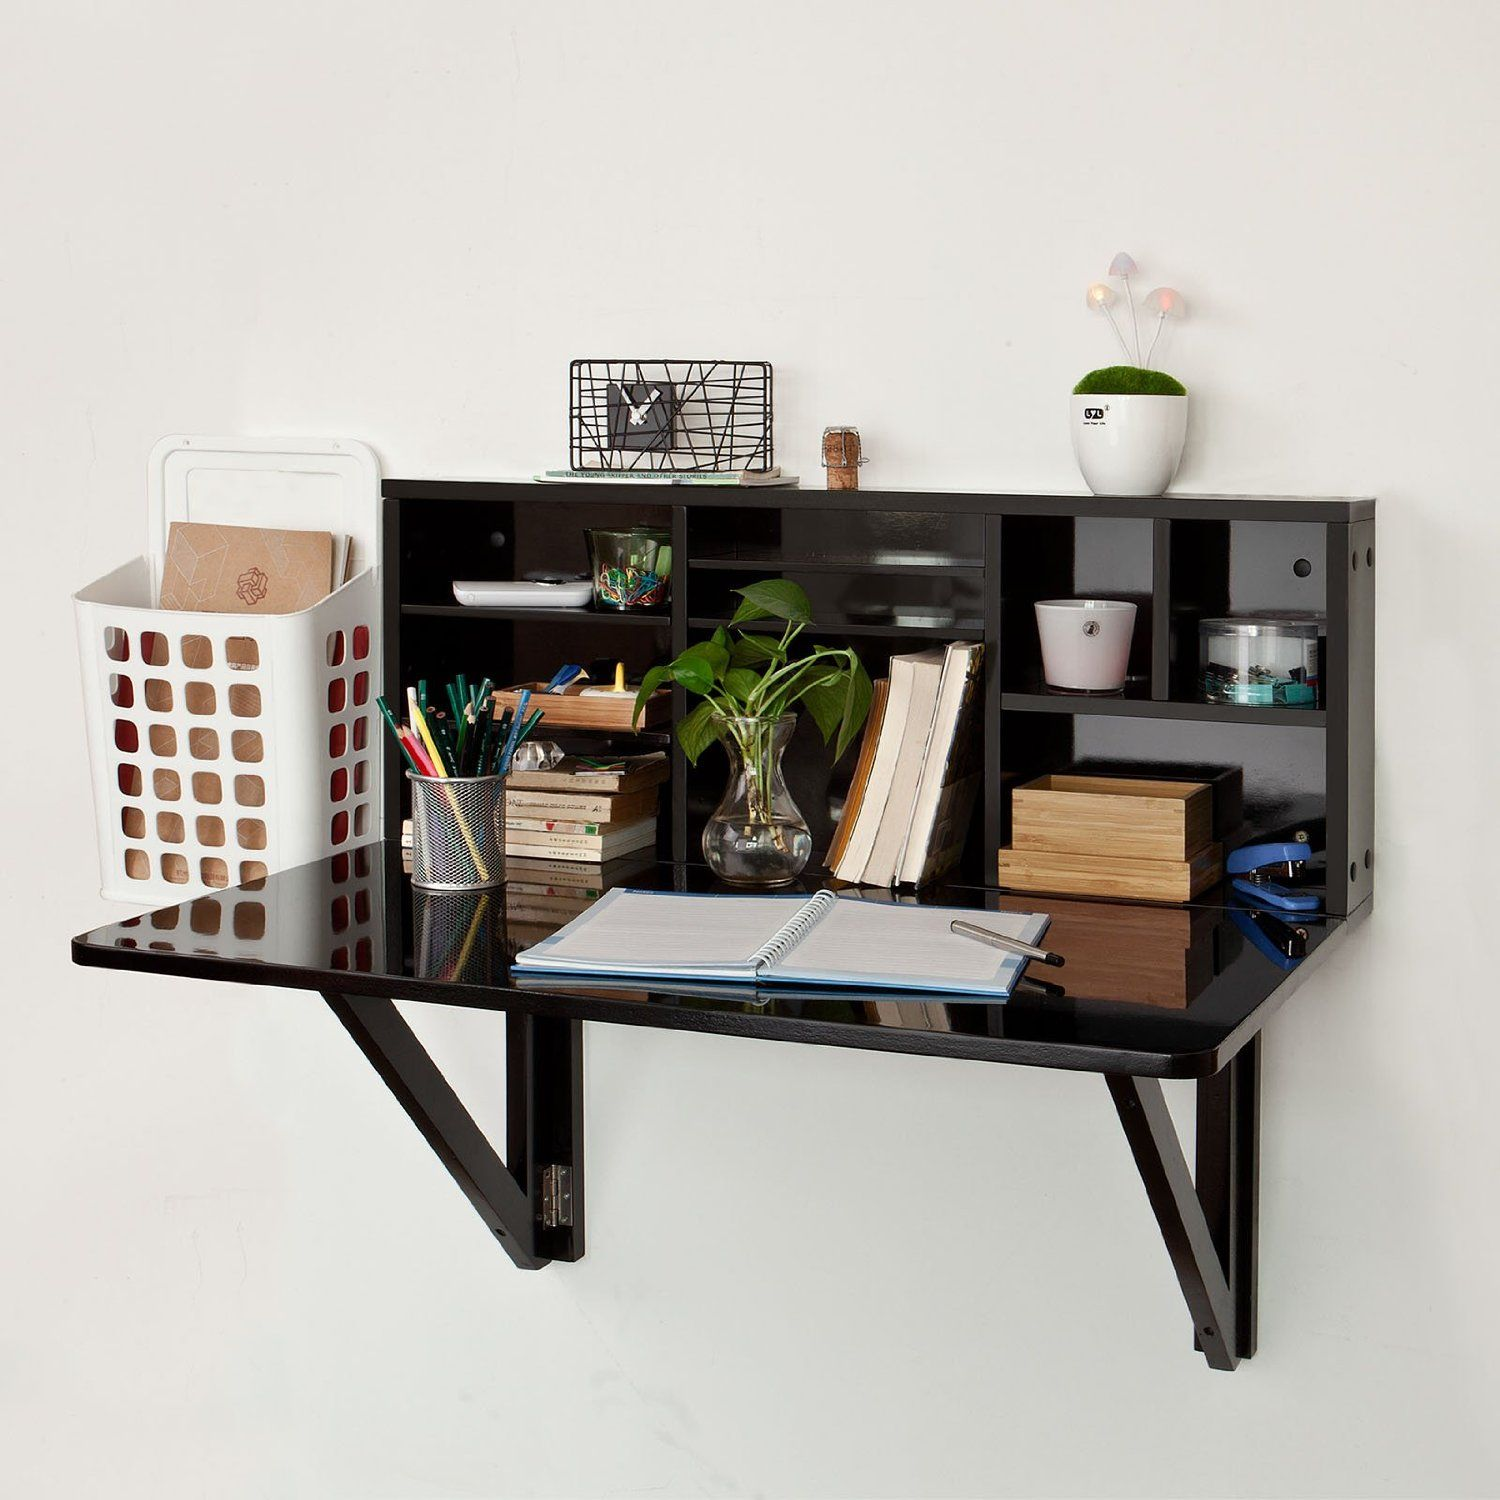 Furniture Black Wood Wall Mounted Fold Up Desk With Stationery Shelves And White Plastic File